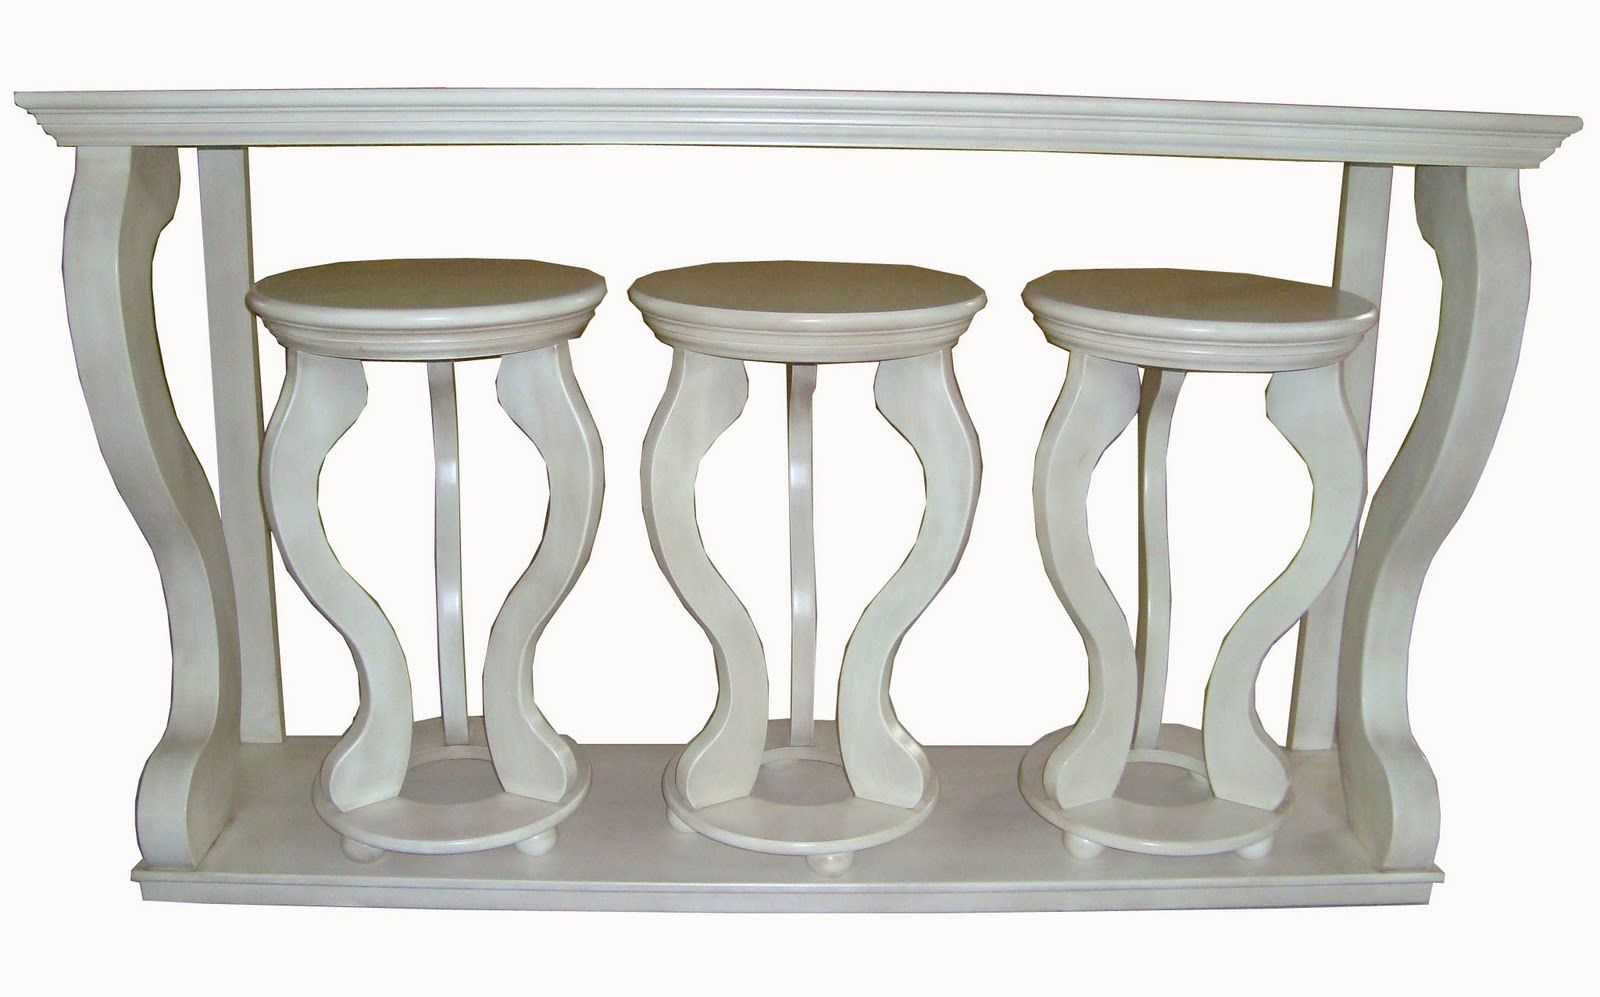 Miraculous I Want This Tainoki Console Table And Stools Set So Bad Pabps2019 Chair Design Images Pabps2019Com